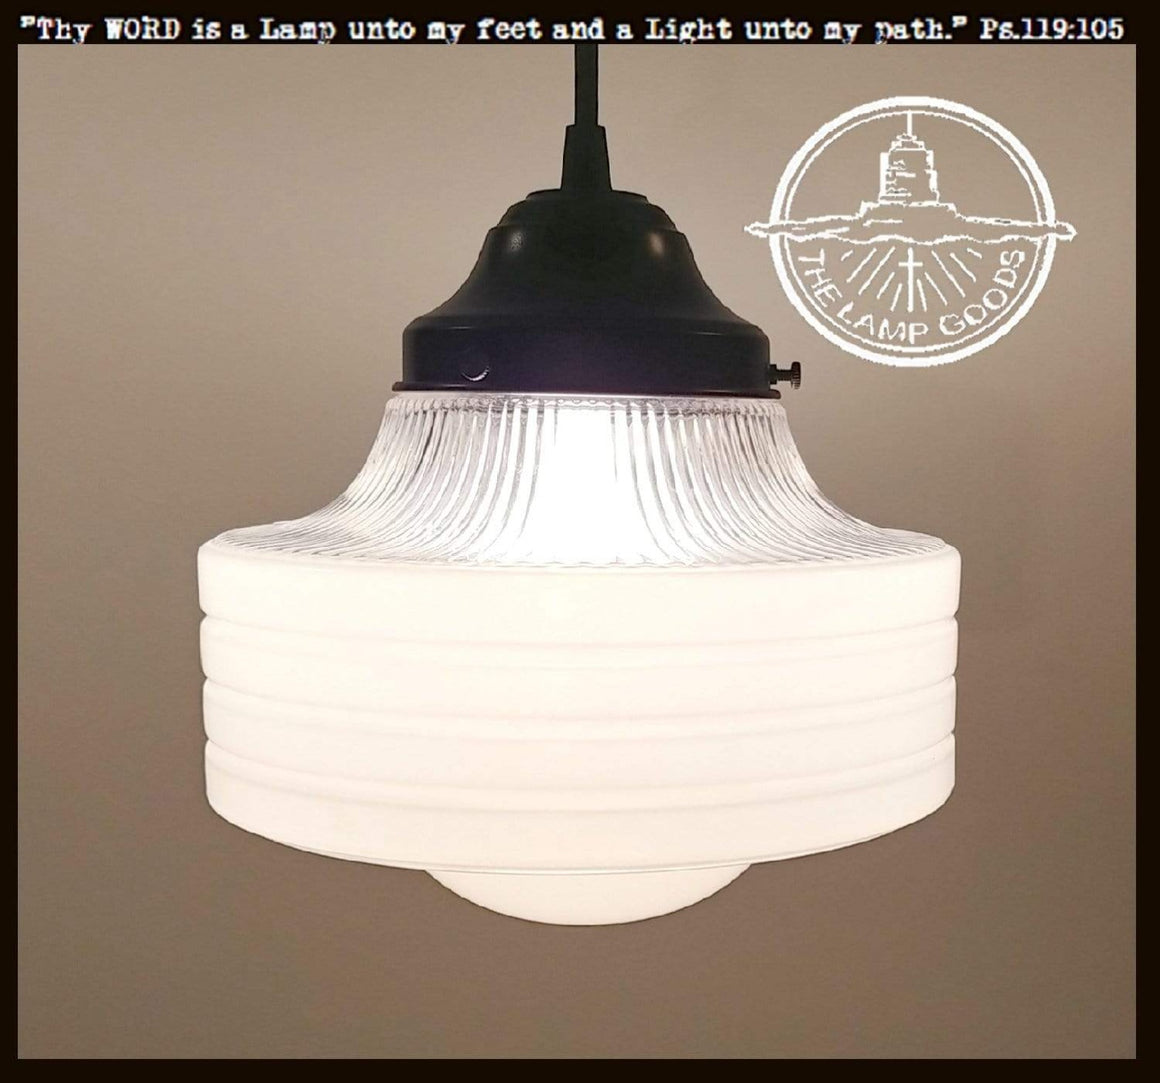 Retro Frost & Clear Glass Pendant Light - The Lamp Goods